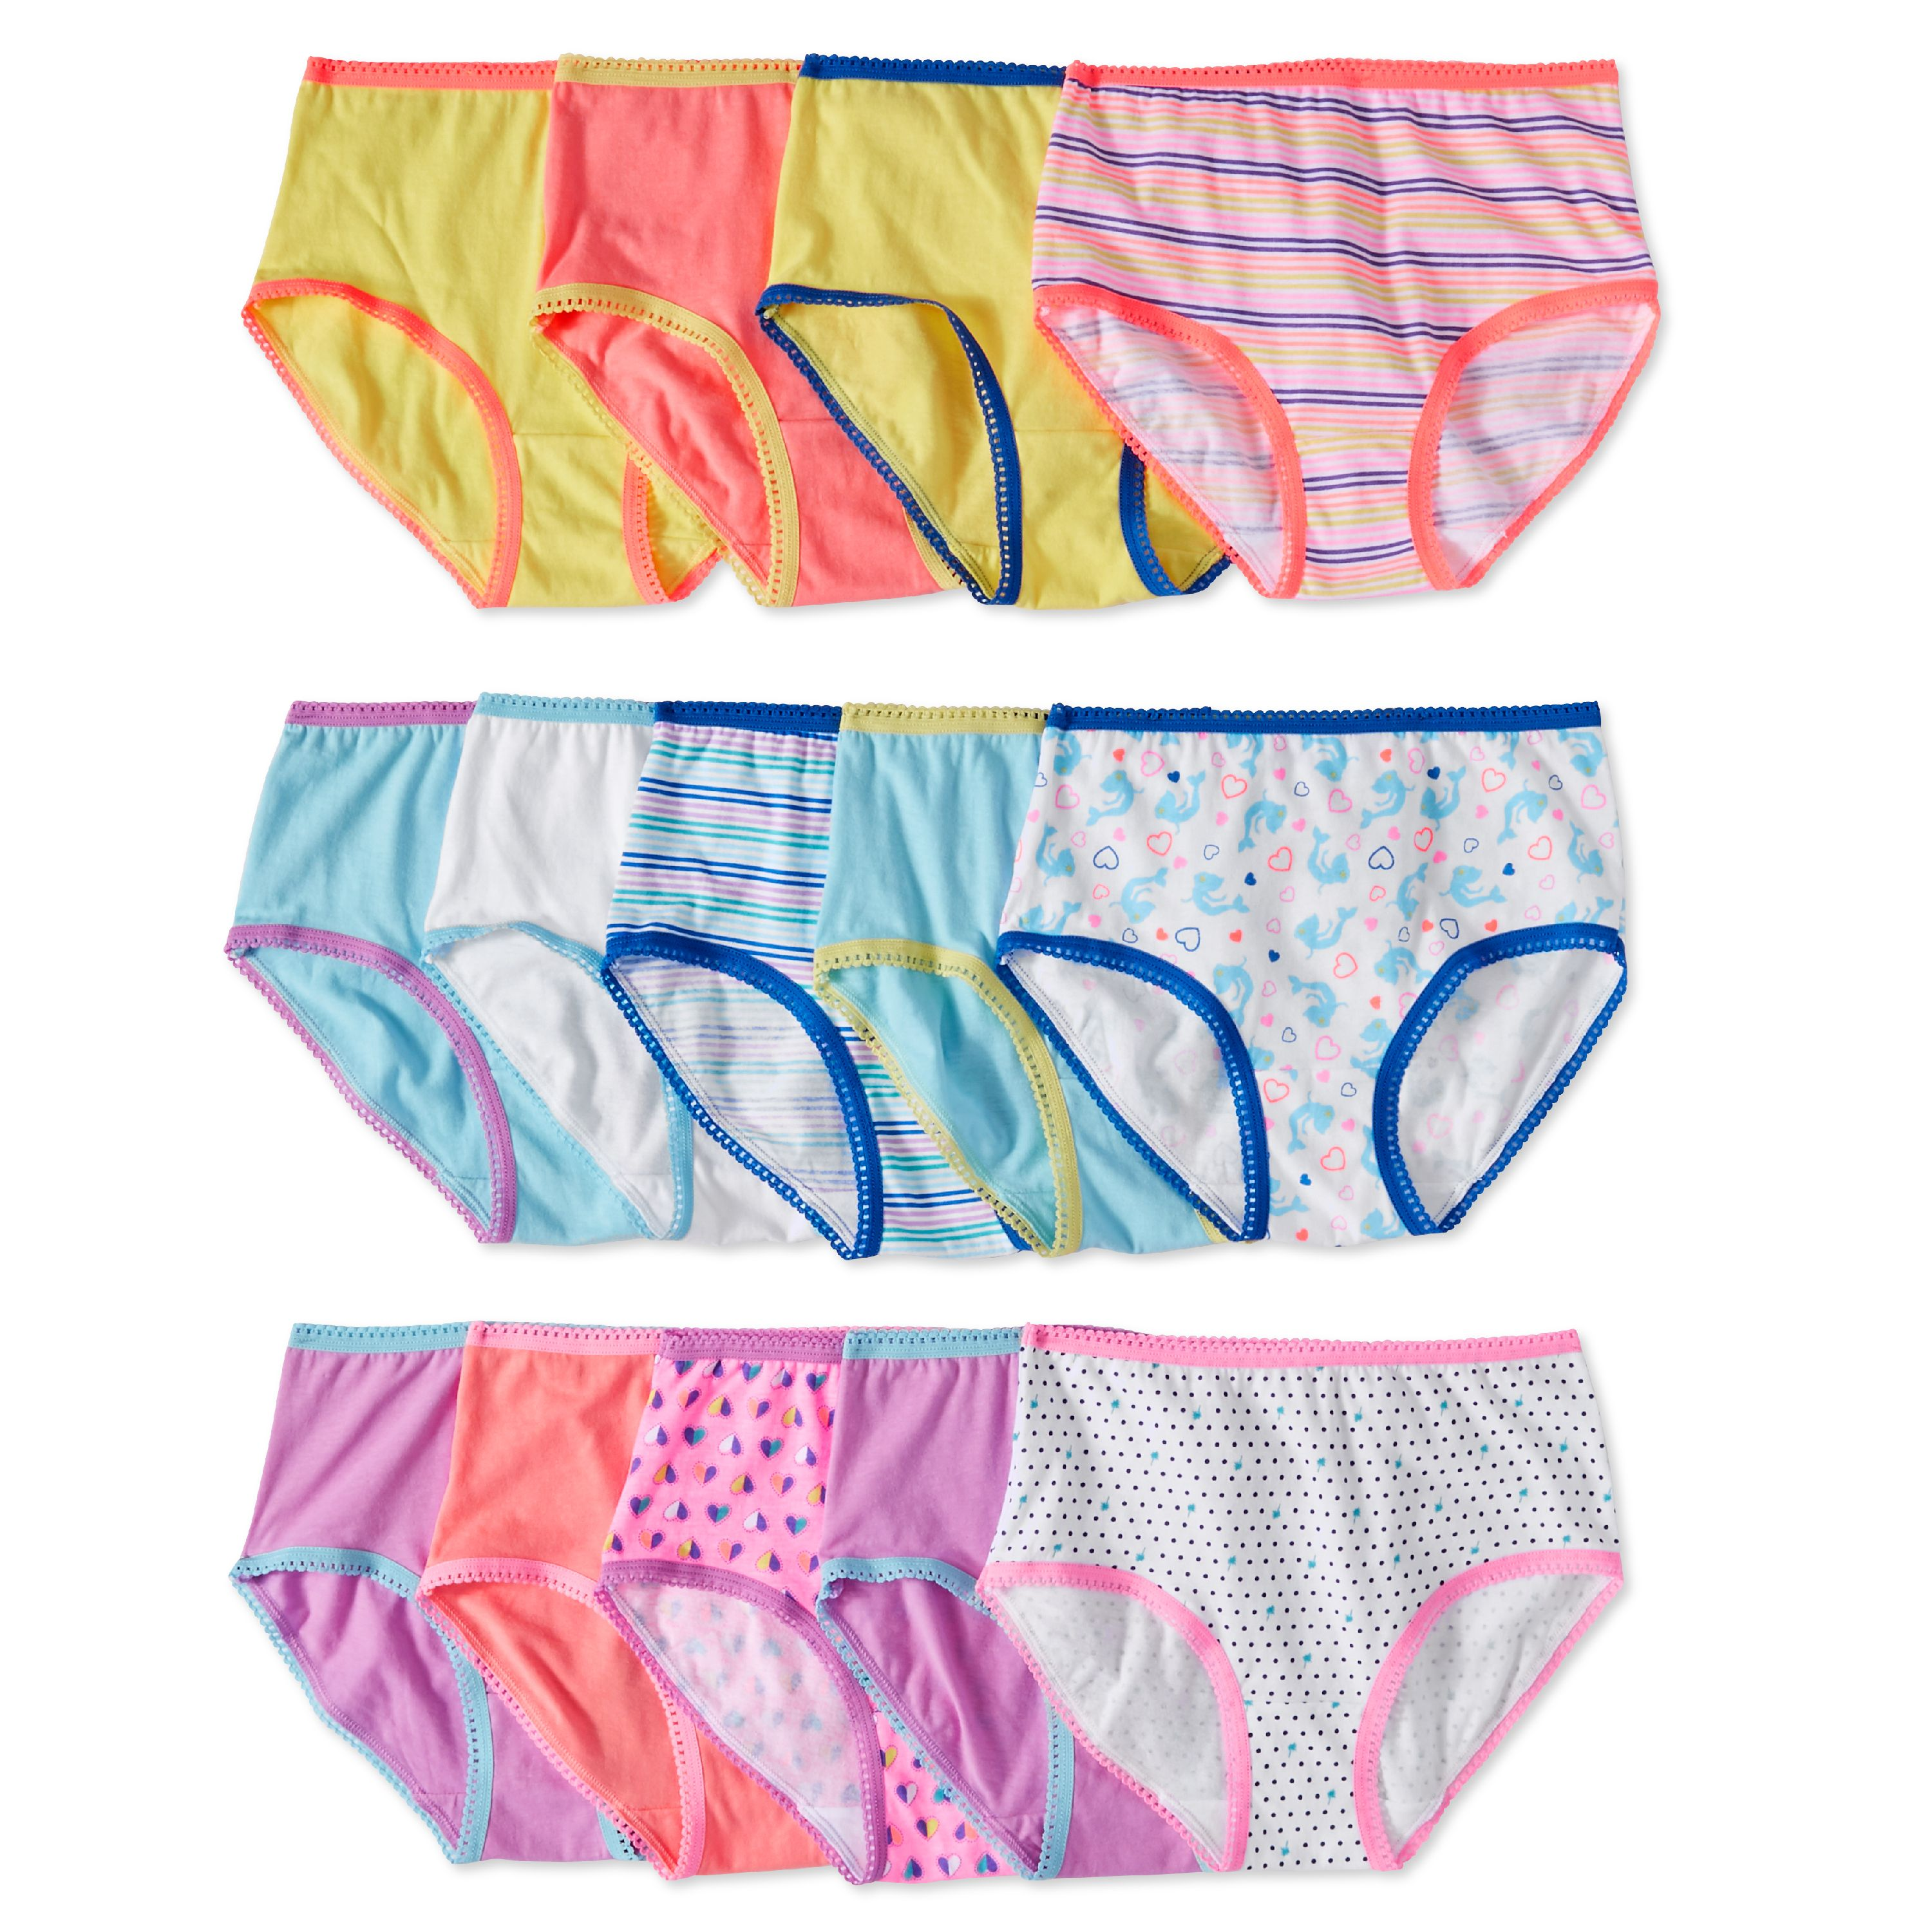 2f016166e796 Wonder Nation - Wonder Nation Girls' 100% Cotton Brief Panty, 14-Pack -  Walmart.com